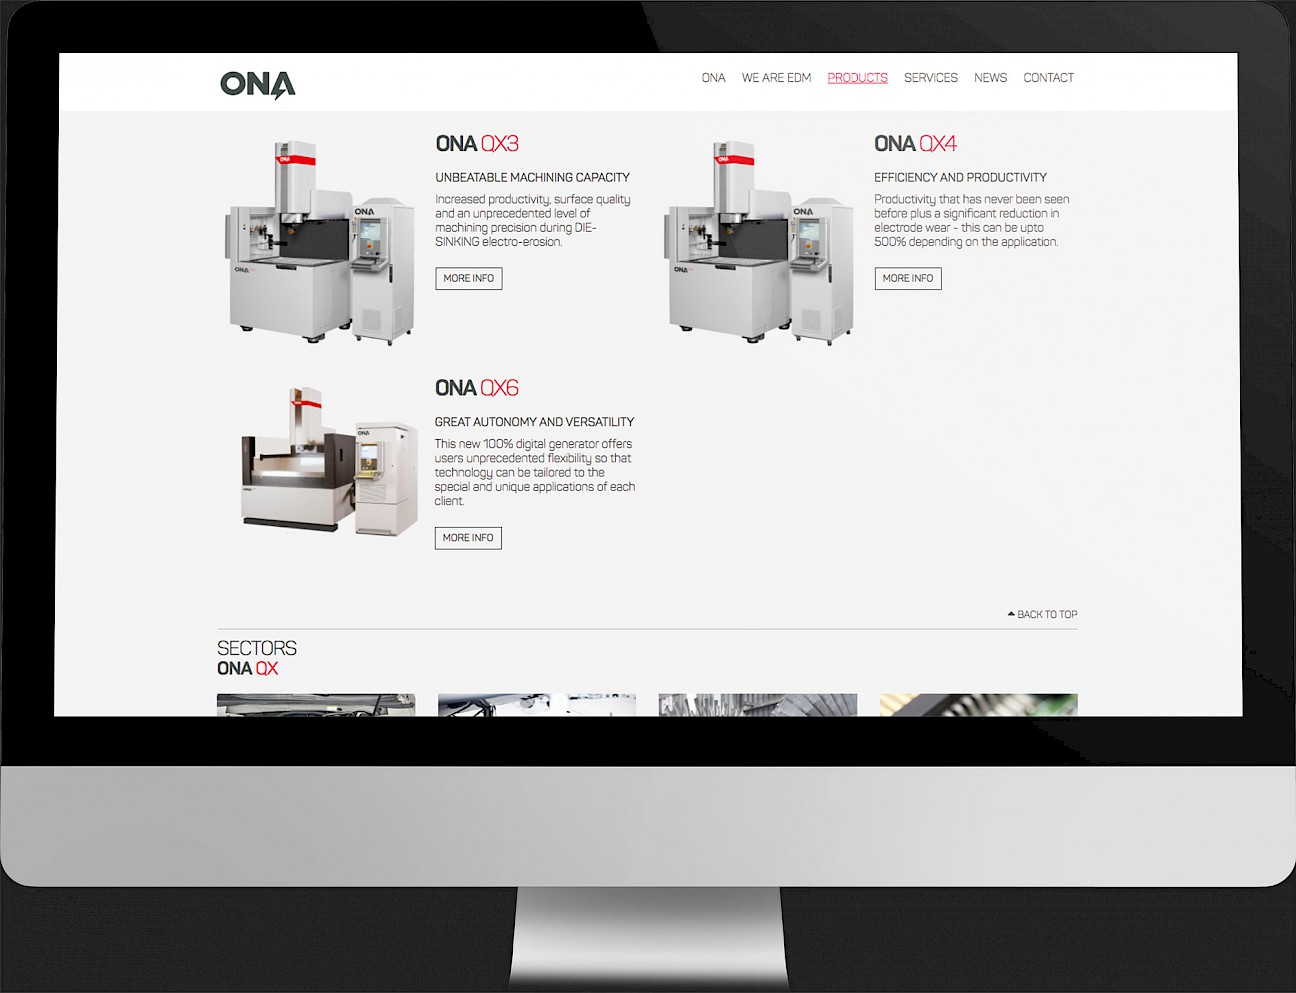 website technology spaces ona branding design 02 digital move narrative